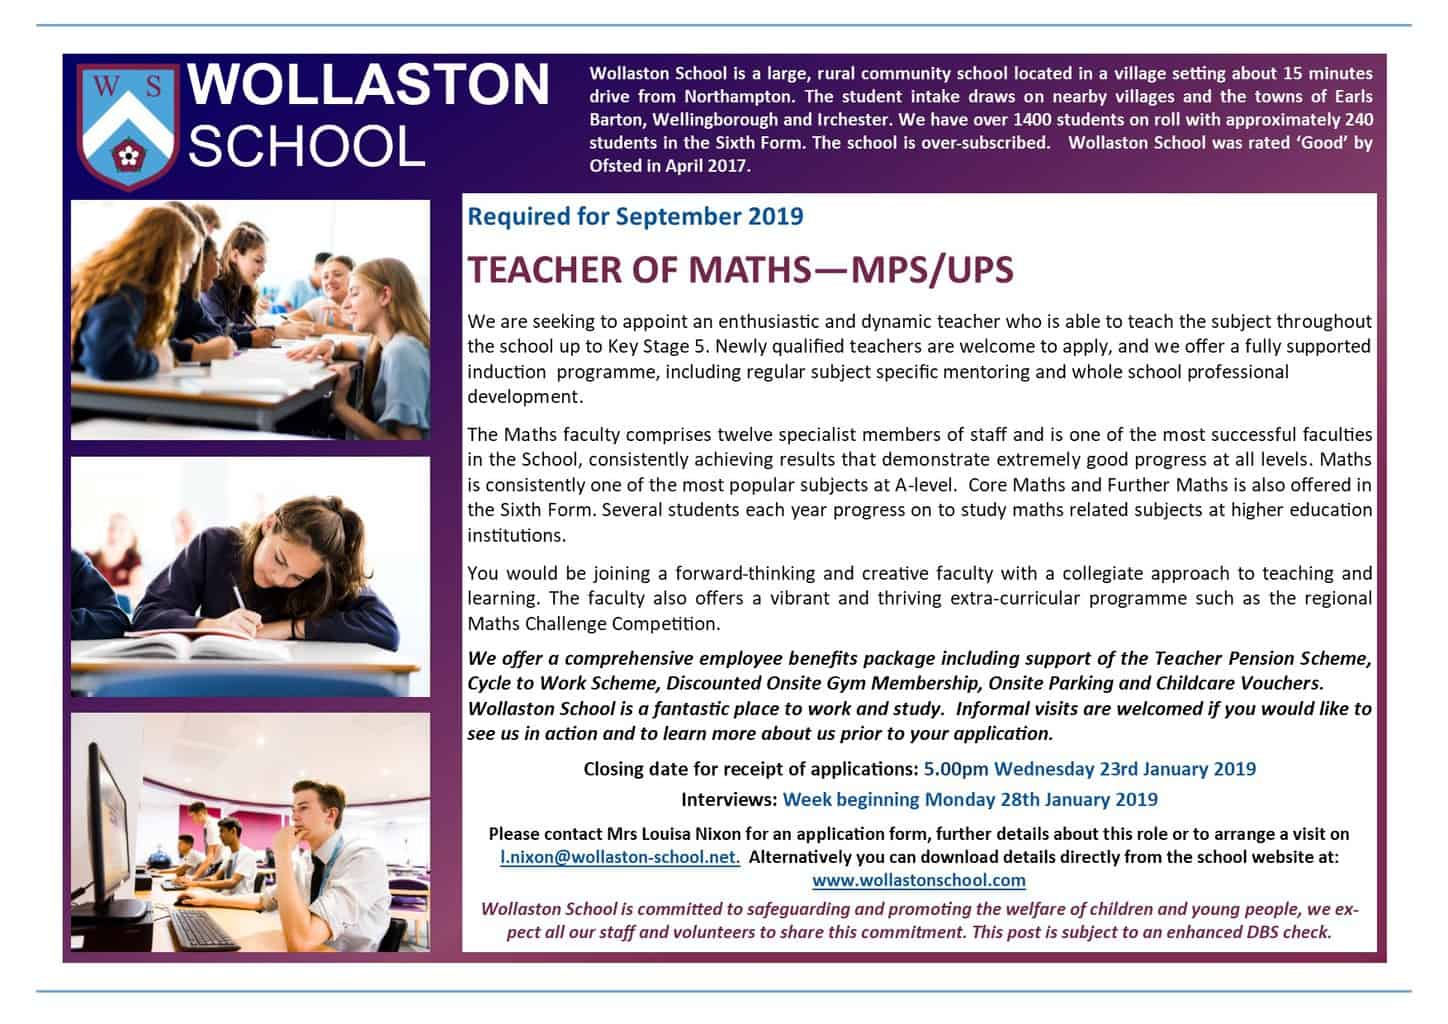 Teacher of Maths - Sept 2019